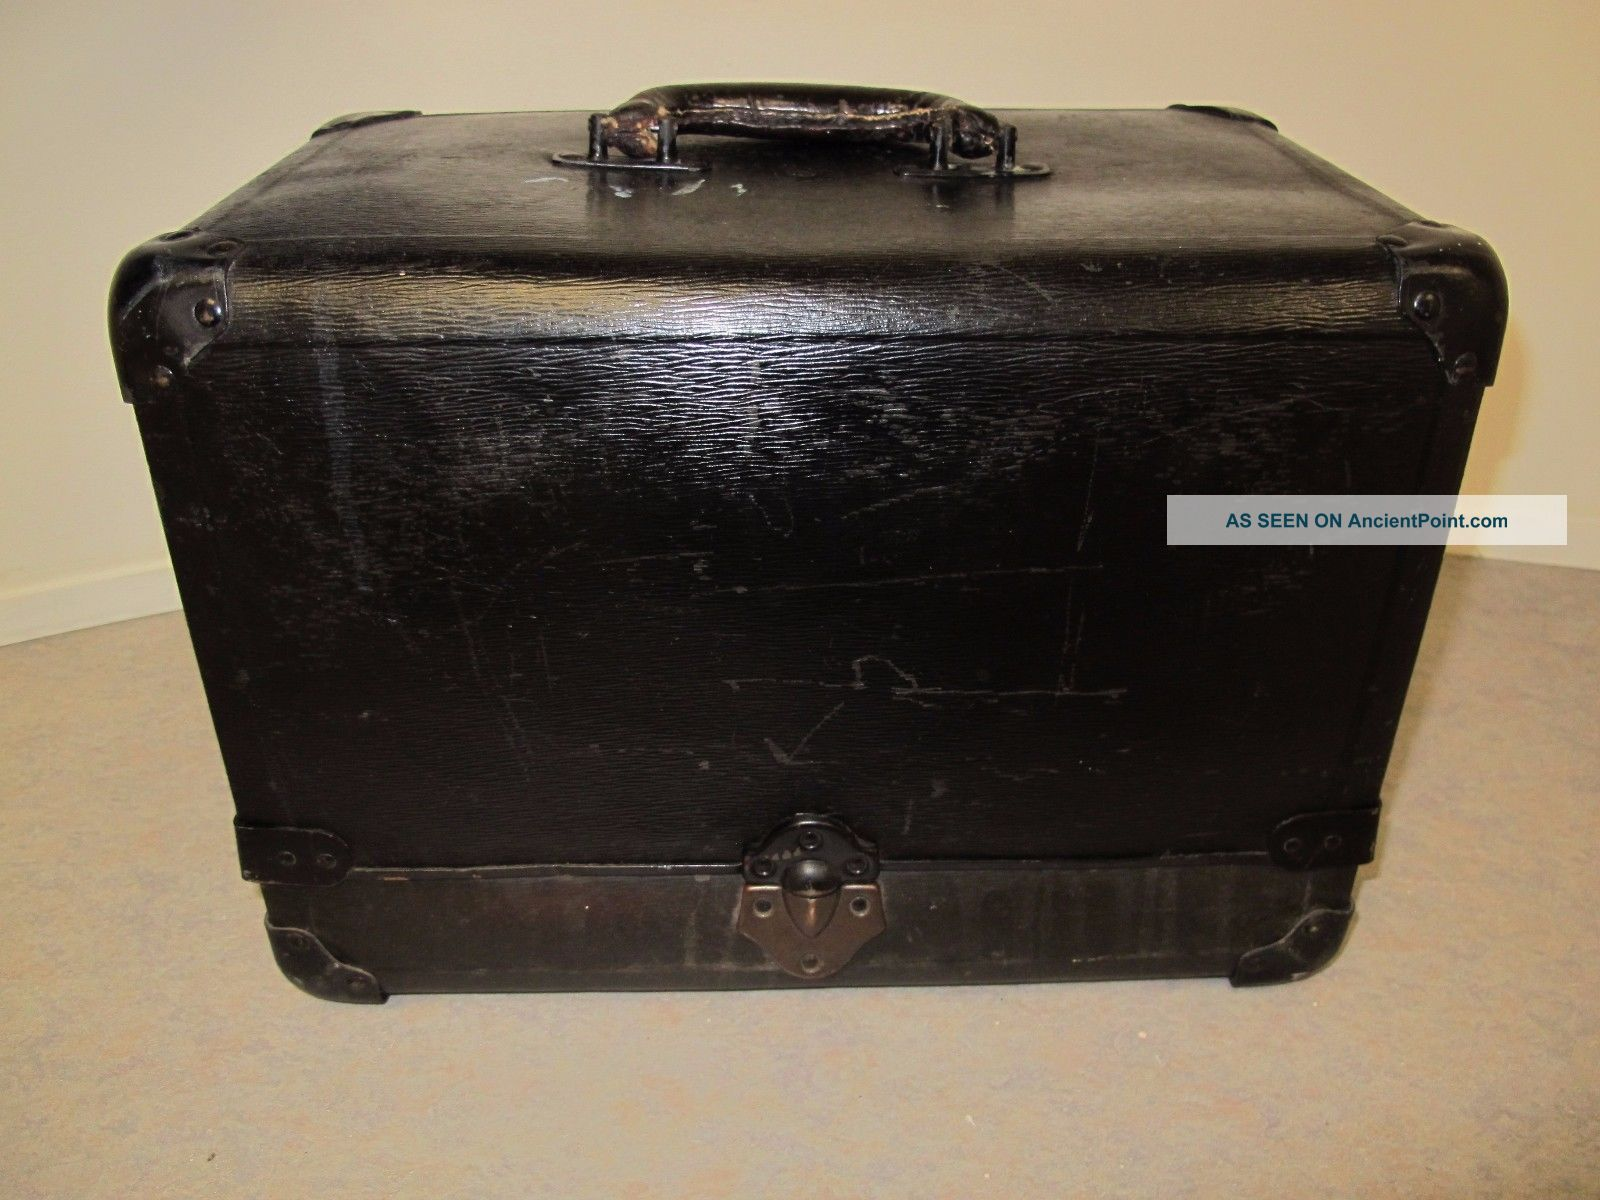 Vintage Artists Tool Case W/ Accordion Compartments Fibre Products Mfg.  Co.  Ny Doctor Bags photo